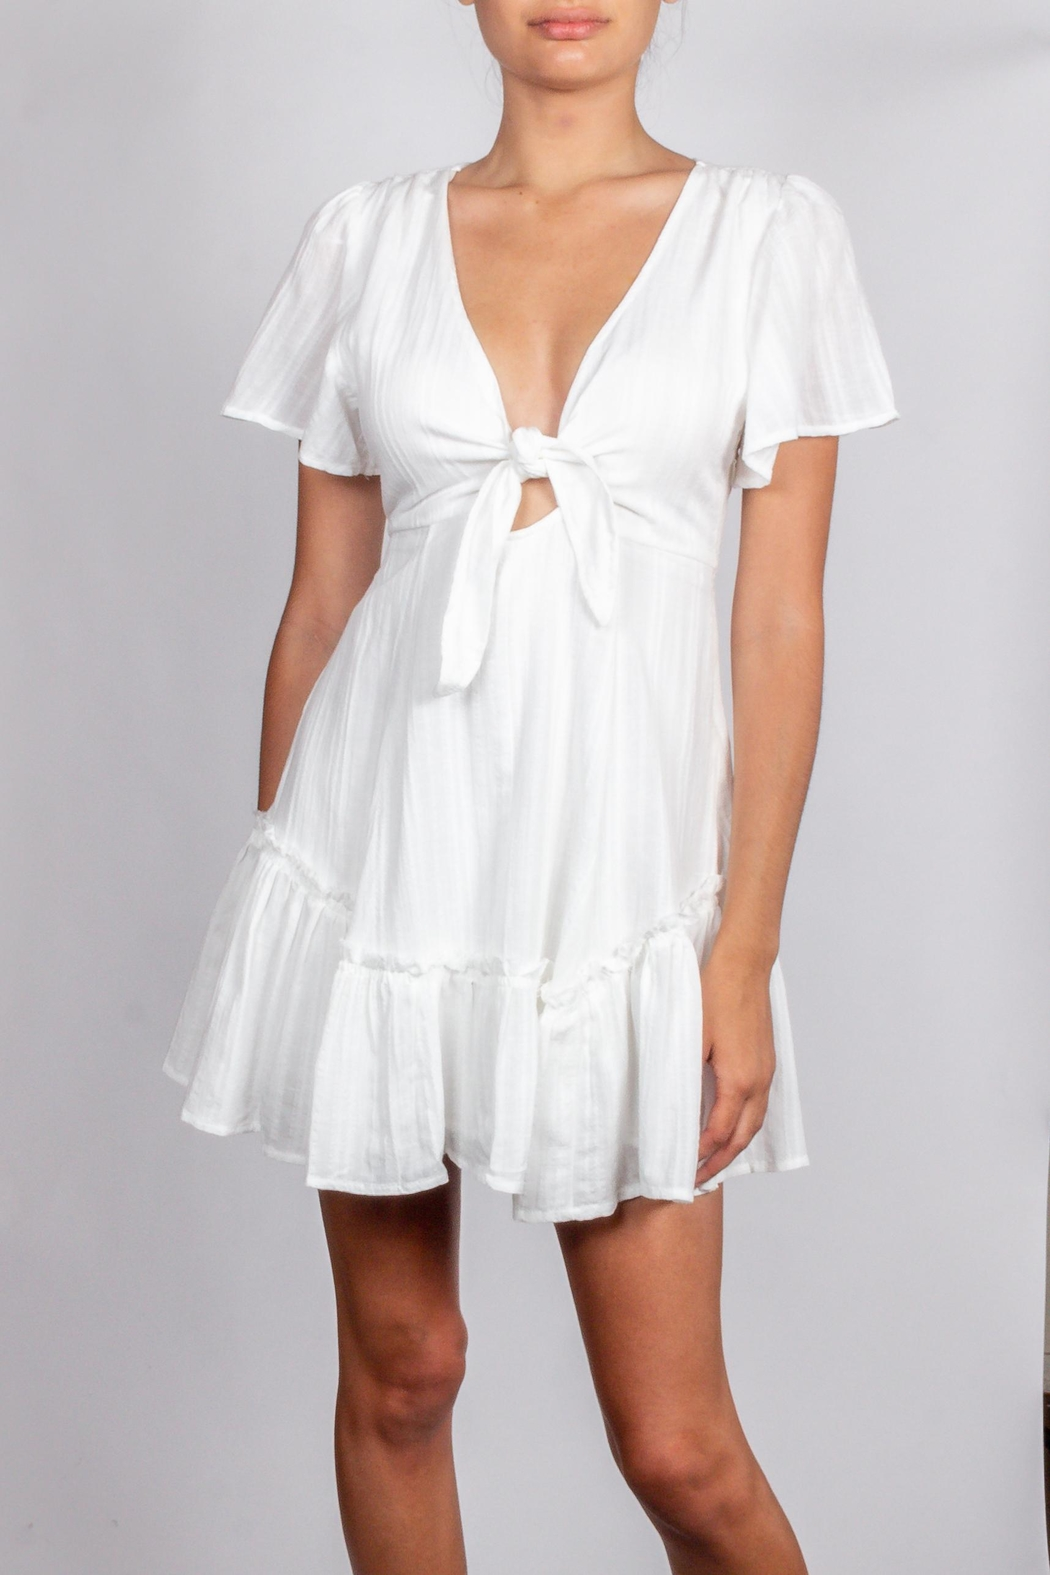 Cotton Candy LA Detailed-White-Tie Chest Dress - Side Cropped Image